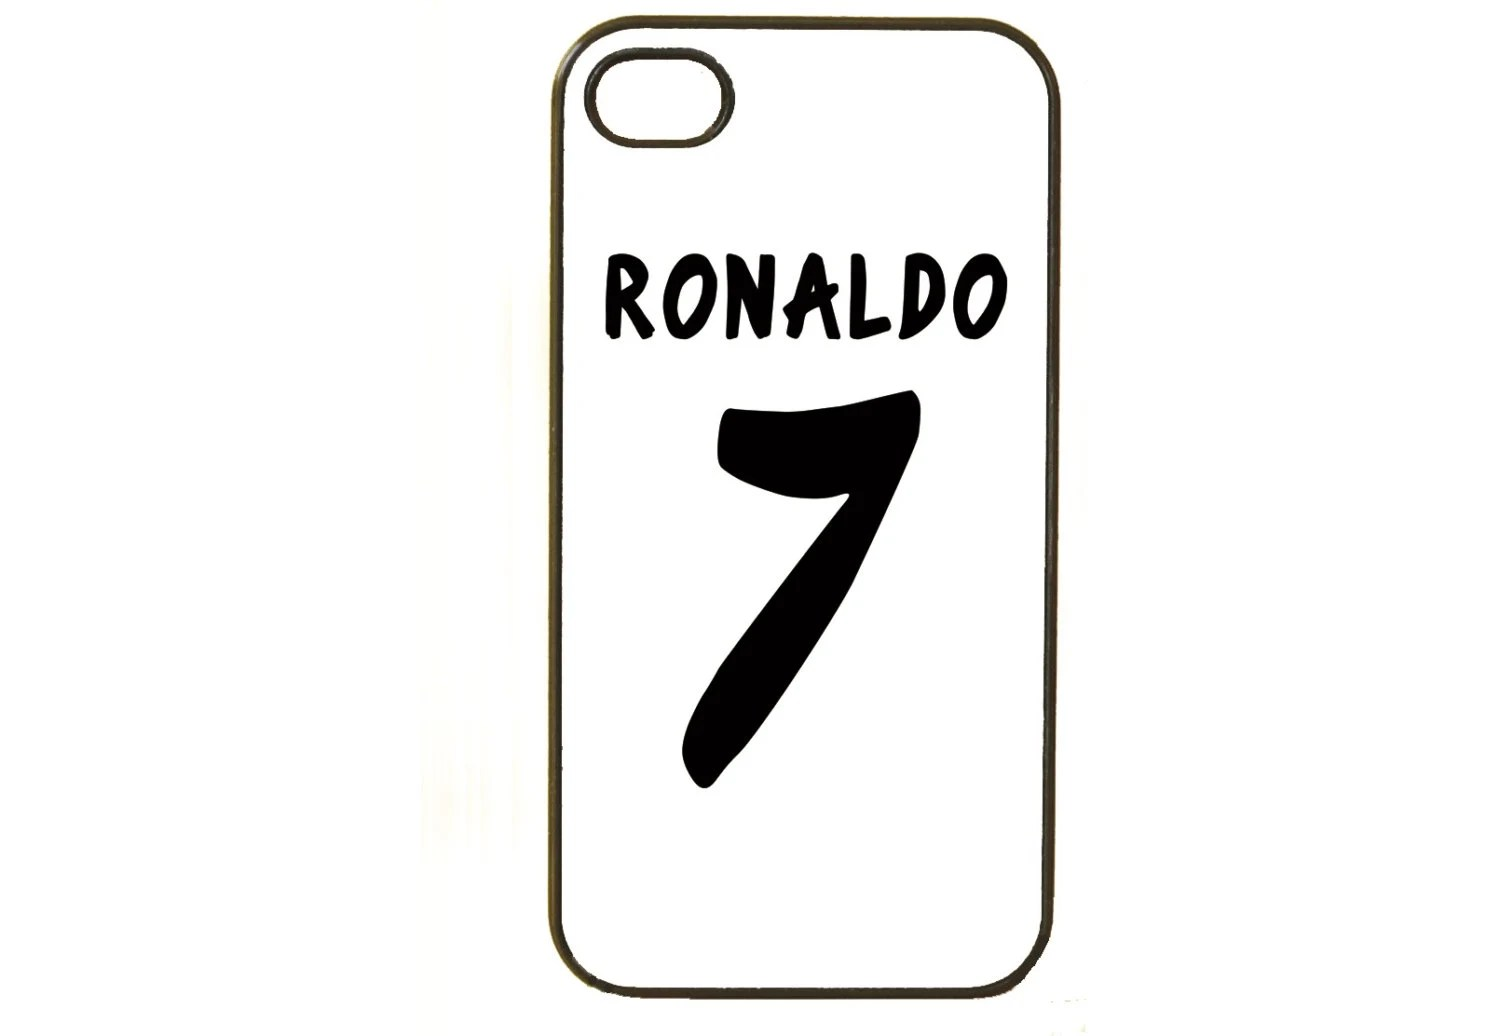 Cristiano Ronaldo Real Madrid case cover for Iphone 4 4s 5